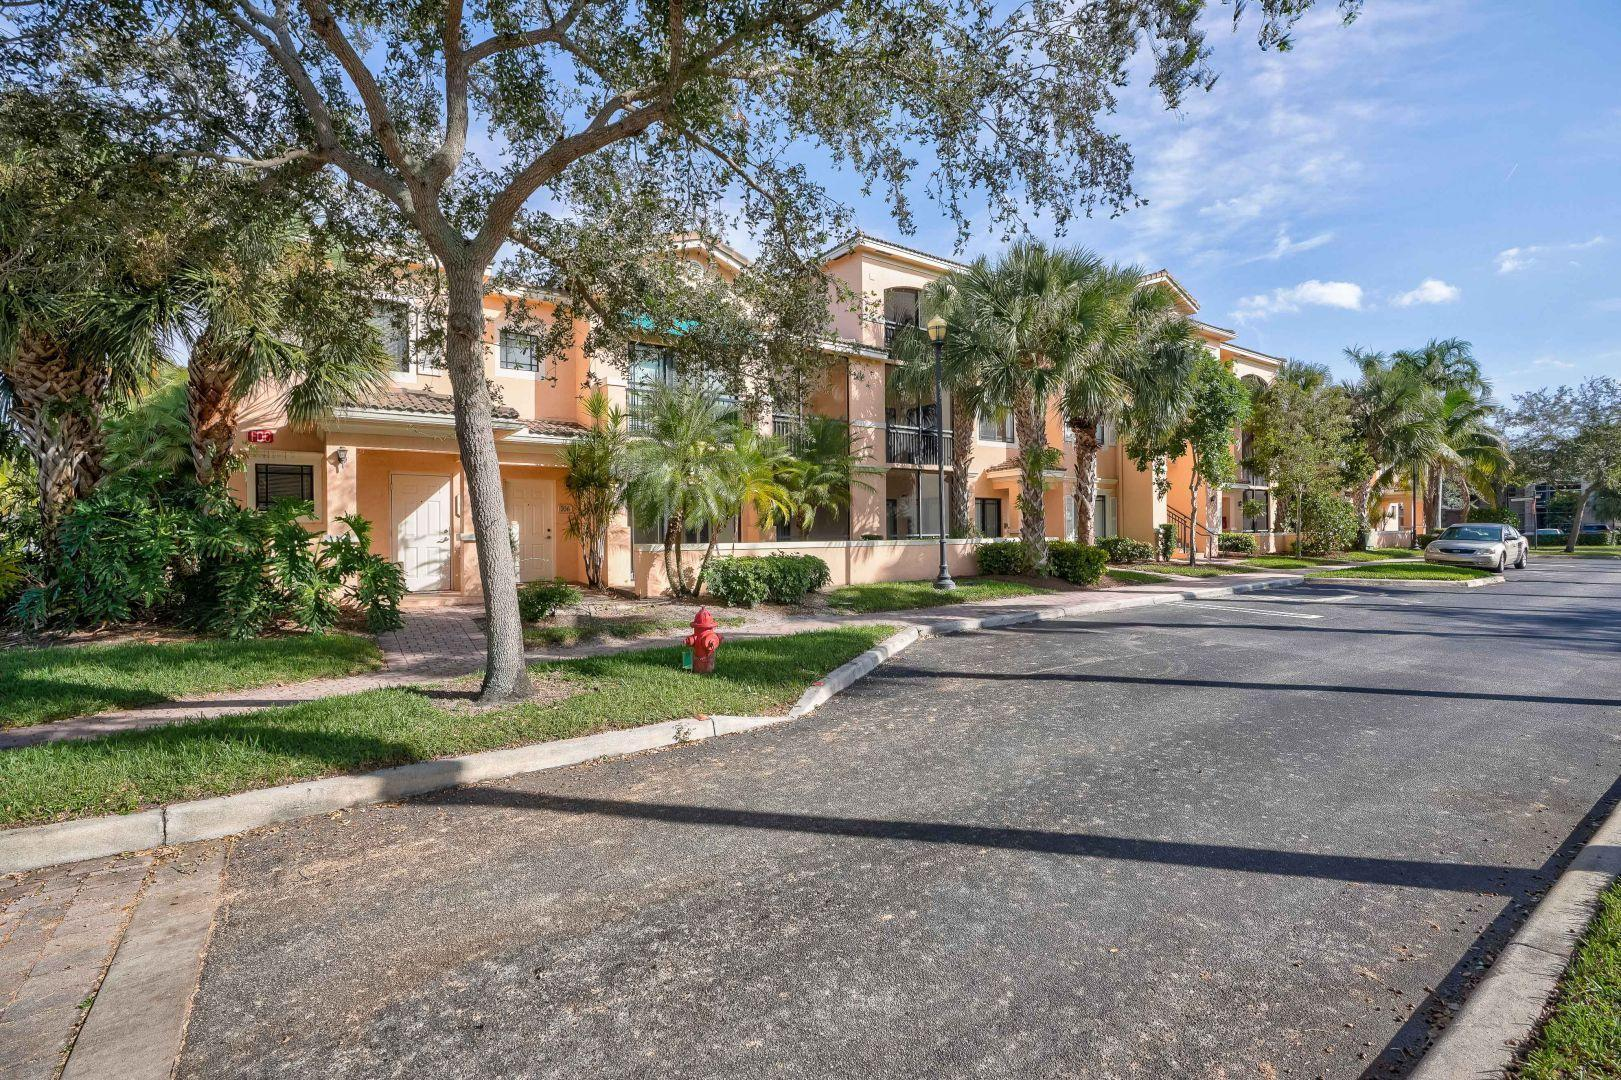 Nestled in a lush, resort-style community in Palm Beach Gardens, this beautiful and well-maintained 2 bedroom, 2 bath apartment is available for occupancy on 7/1/21. Whether it's the kitchen's updated marble countertop, bedroom's large walk-in closets, large washer and dryer utility room, or the privacy-maximizing split floor plan, you're sure to fall in love with this first floor unit nestled in the prized San Matera community. Minimum lease term is one year.  First/Last month, including a $1,850 Security Deposit is required upon move-in. Plus, a $500 refundable deposit to HOA. 650 credit score, and a background check is performed.Broker-owner landlord.